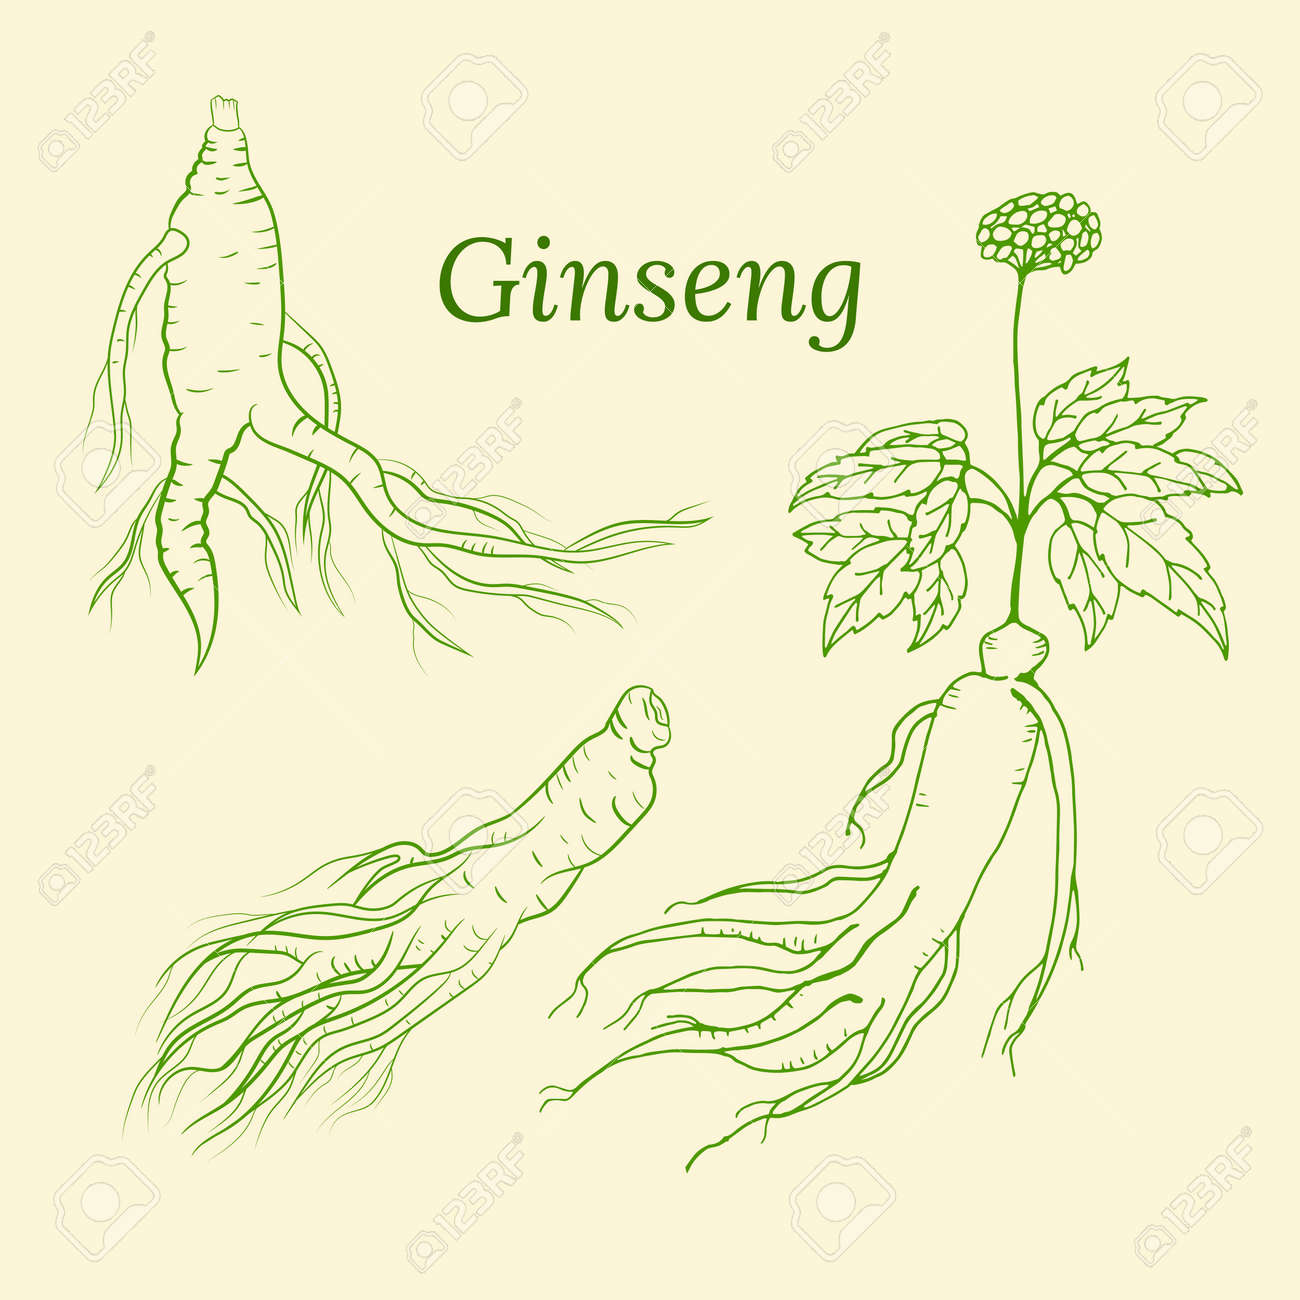 Drawing of leaves and root of ginseng. Ginseng root and berry vector drawing. A sketch of a medicinal plant. Linear graphic design. - 167026869